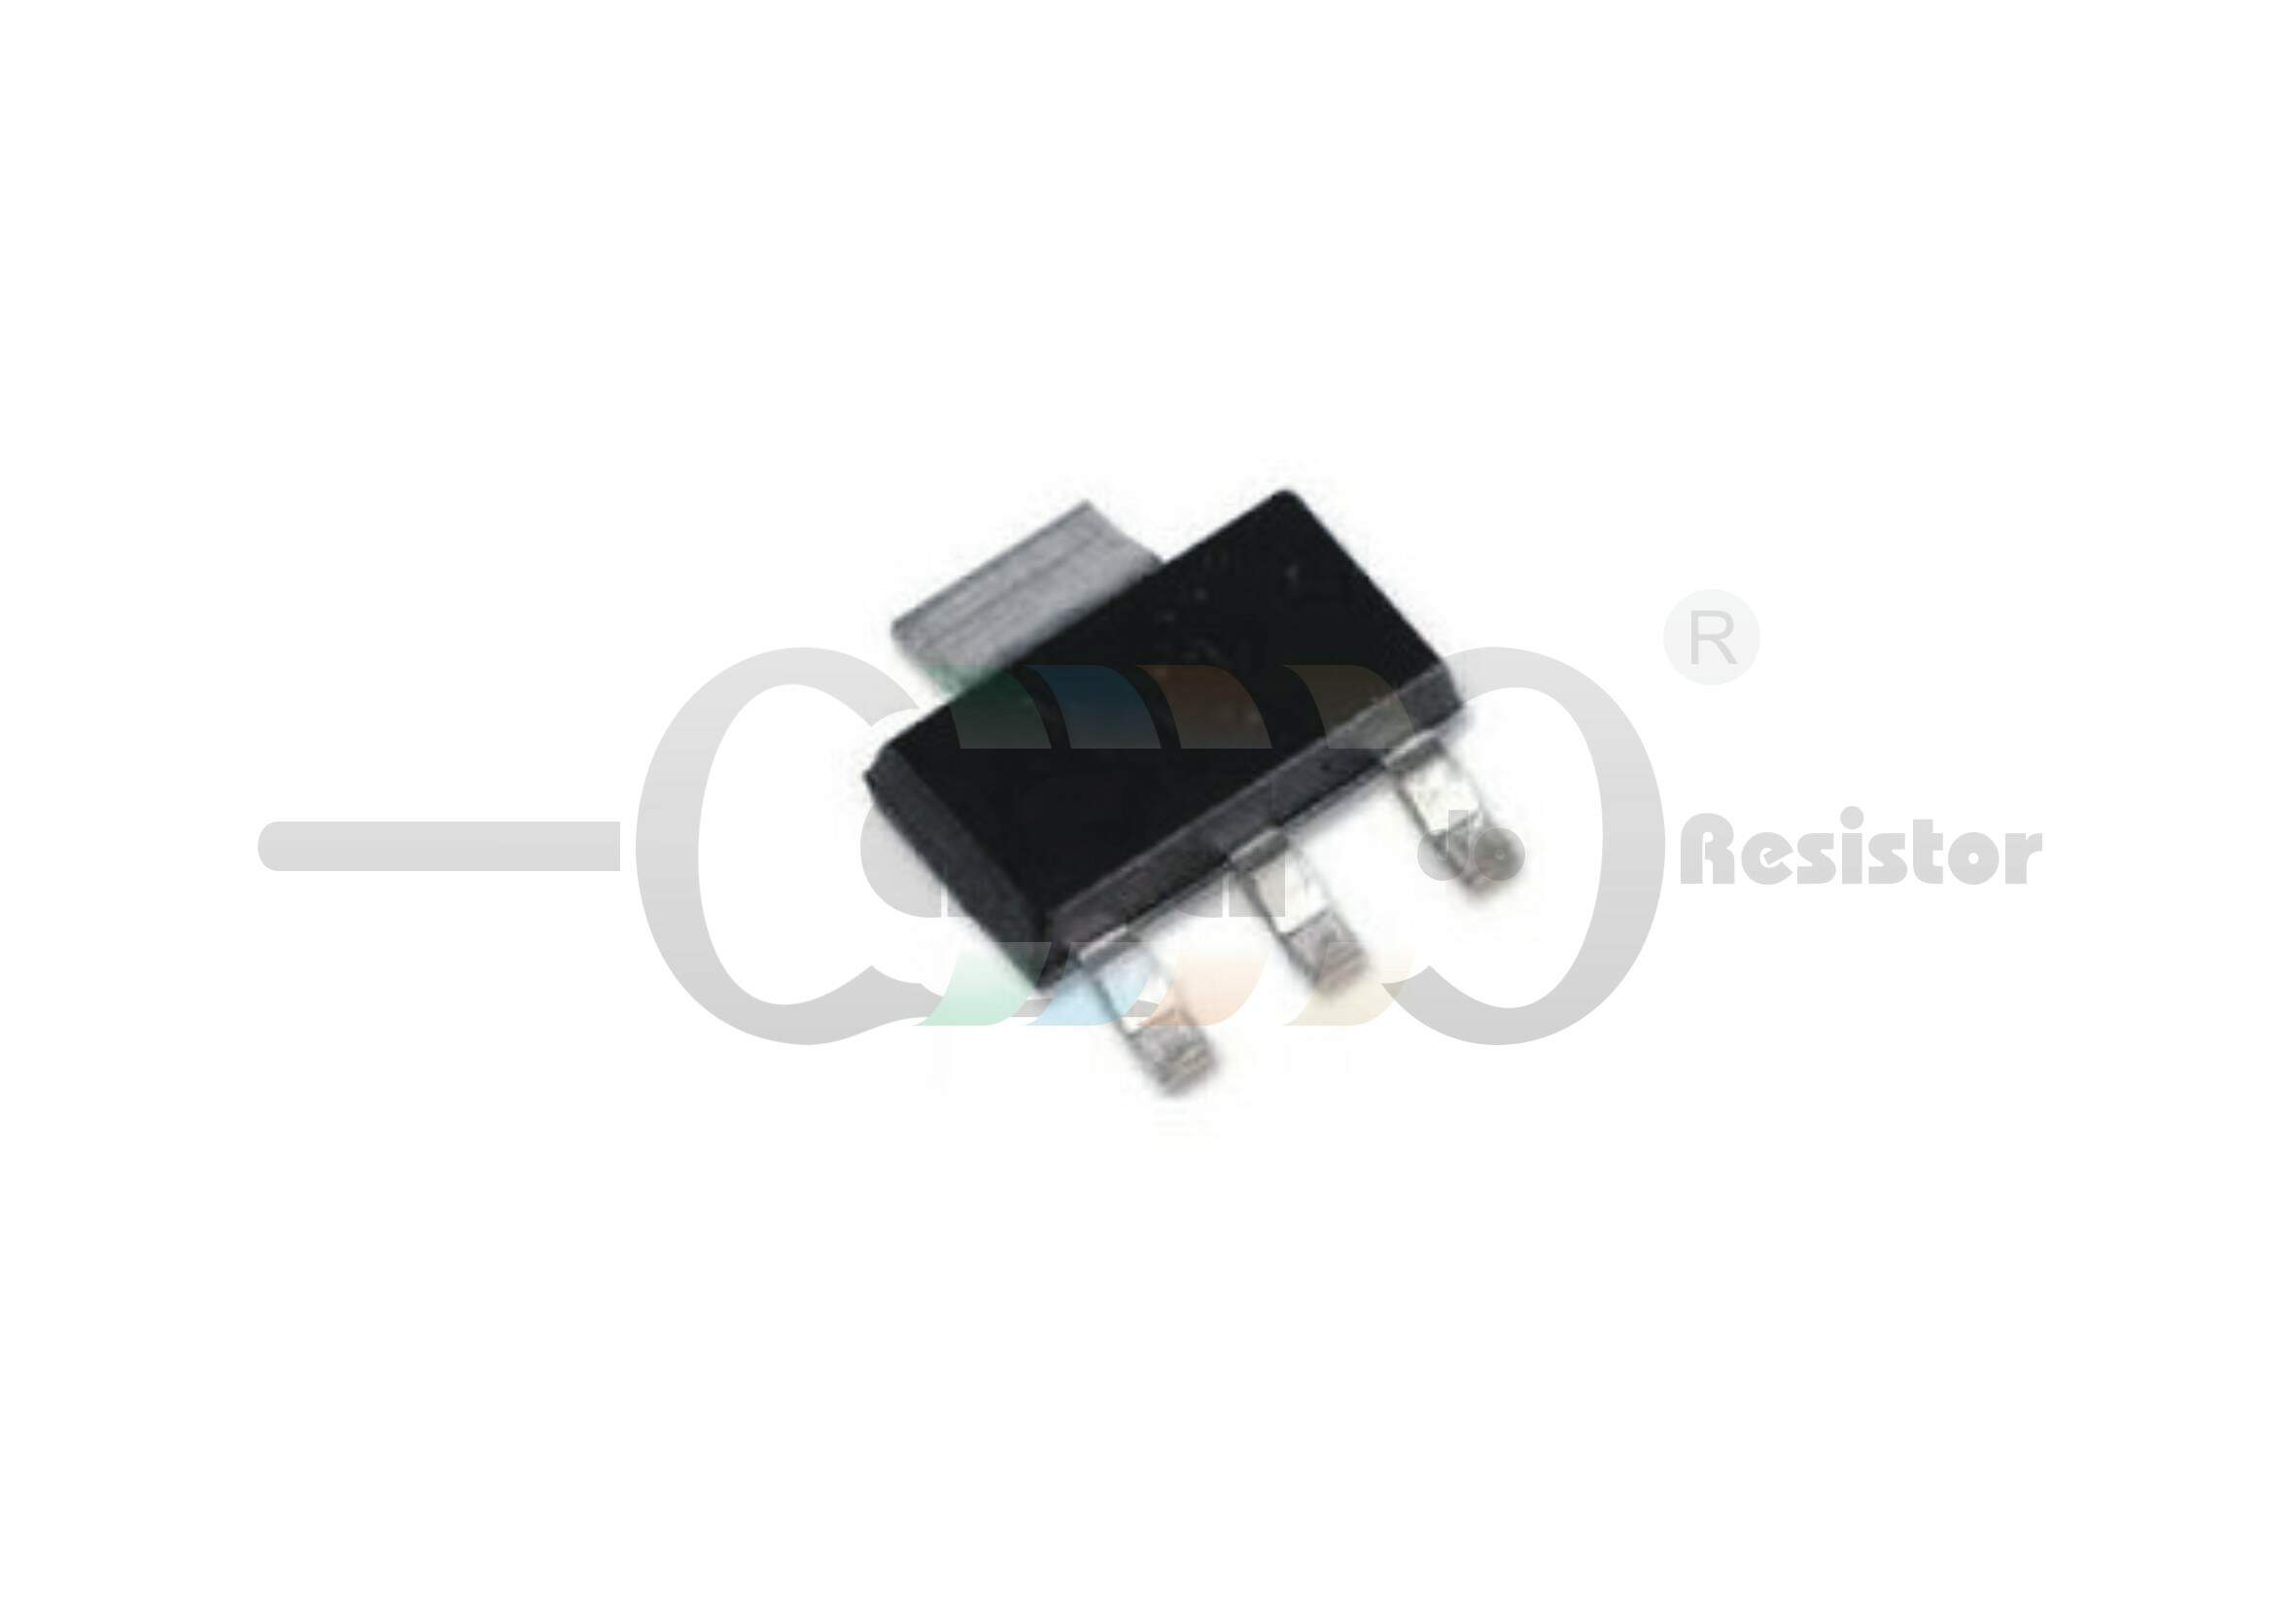 CI SMD AMS117(1117) - 1.8 (ZCUS0024)